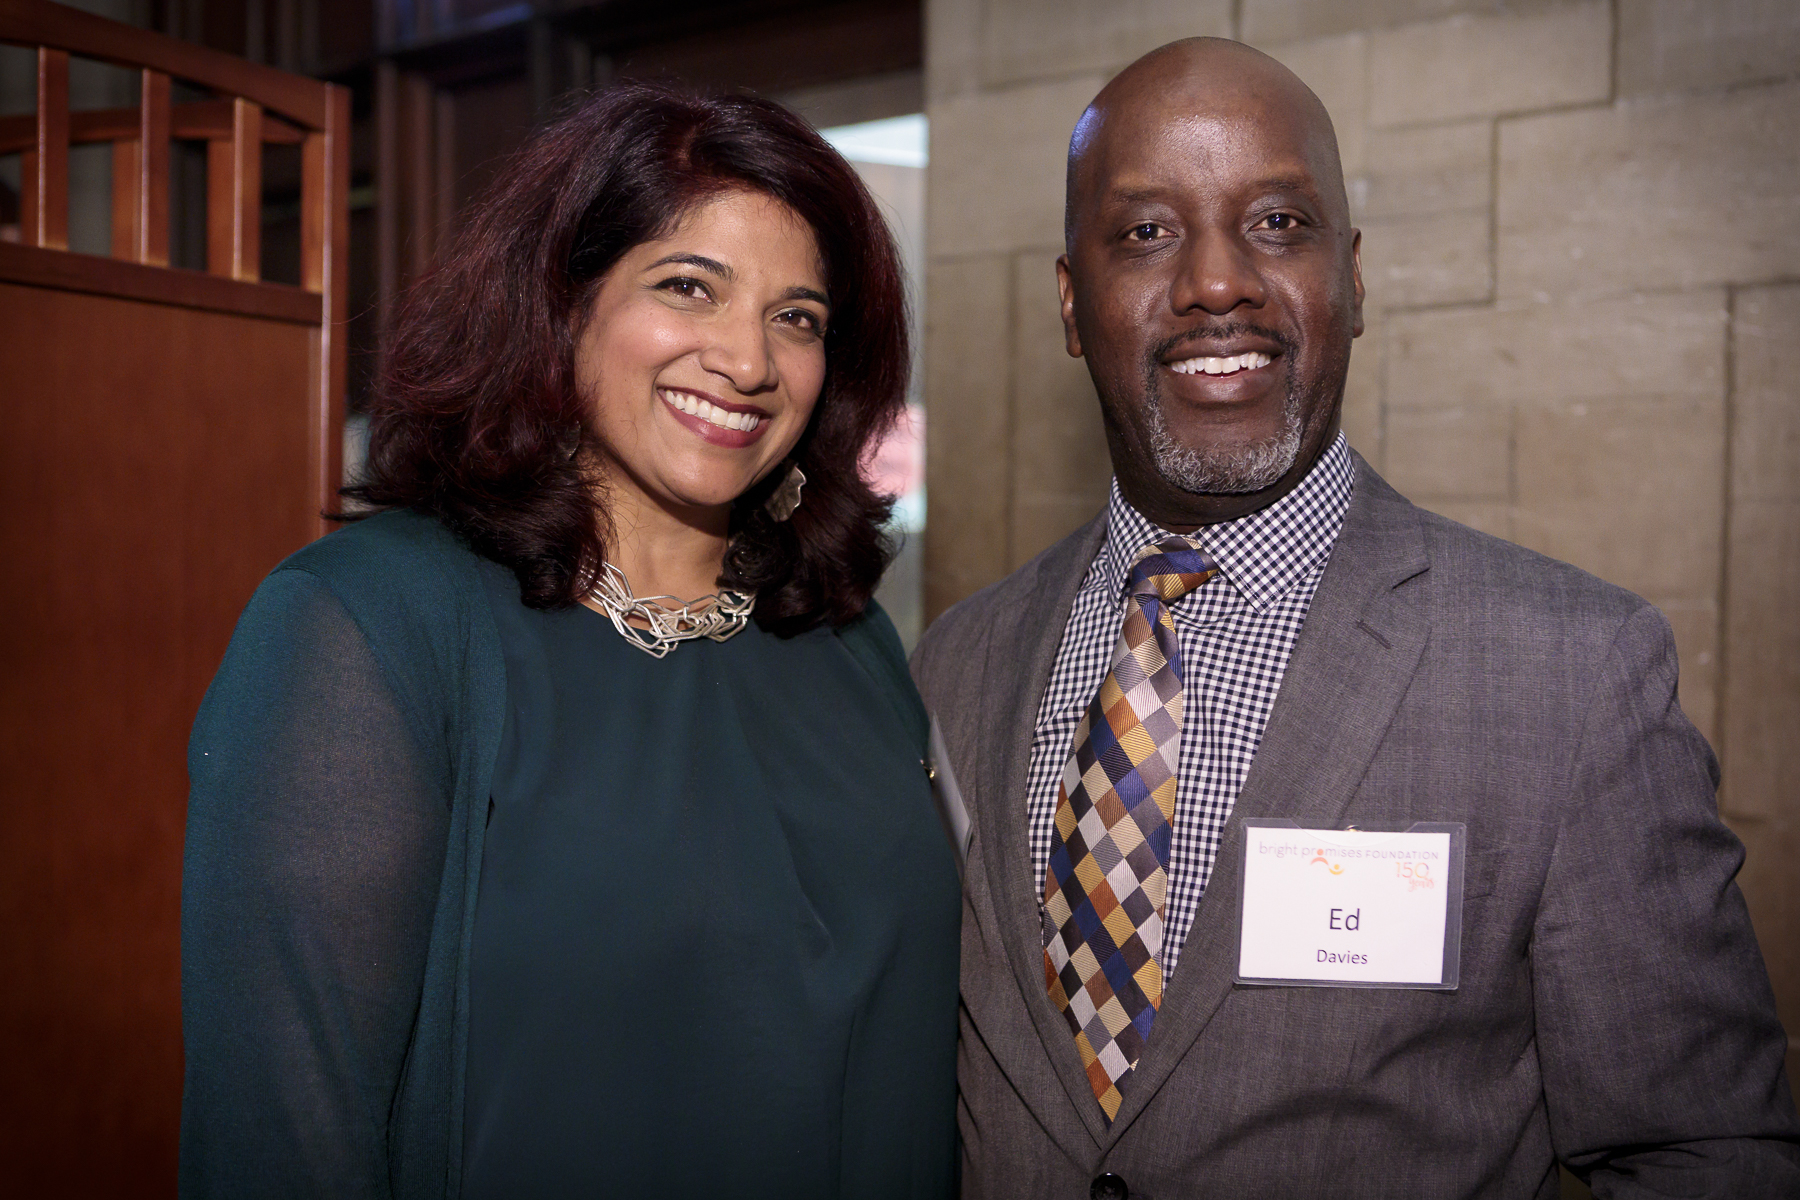 Bright Promises Foundation Board Director Ed Davies (right) with Bright Promises Program Officer Shilpa Bavikatte (right).(Photo by Stephen J. Serio Photography)